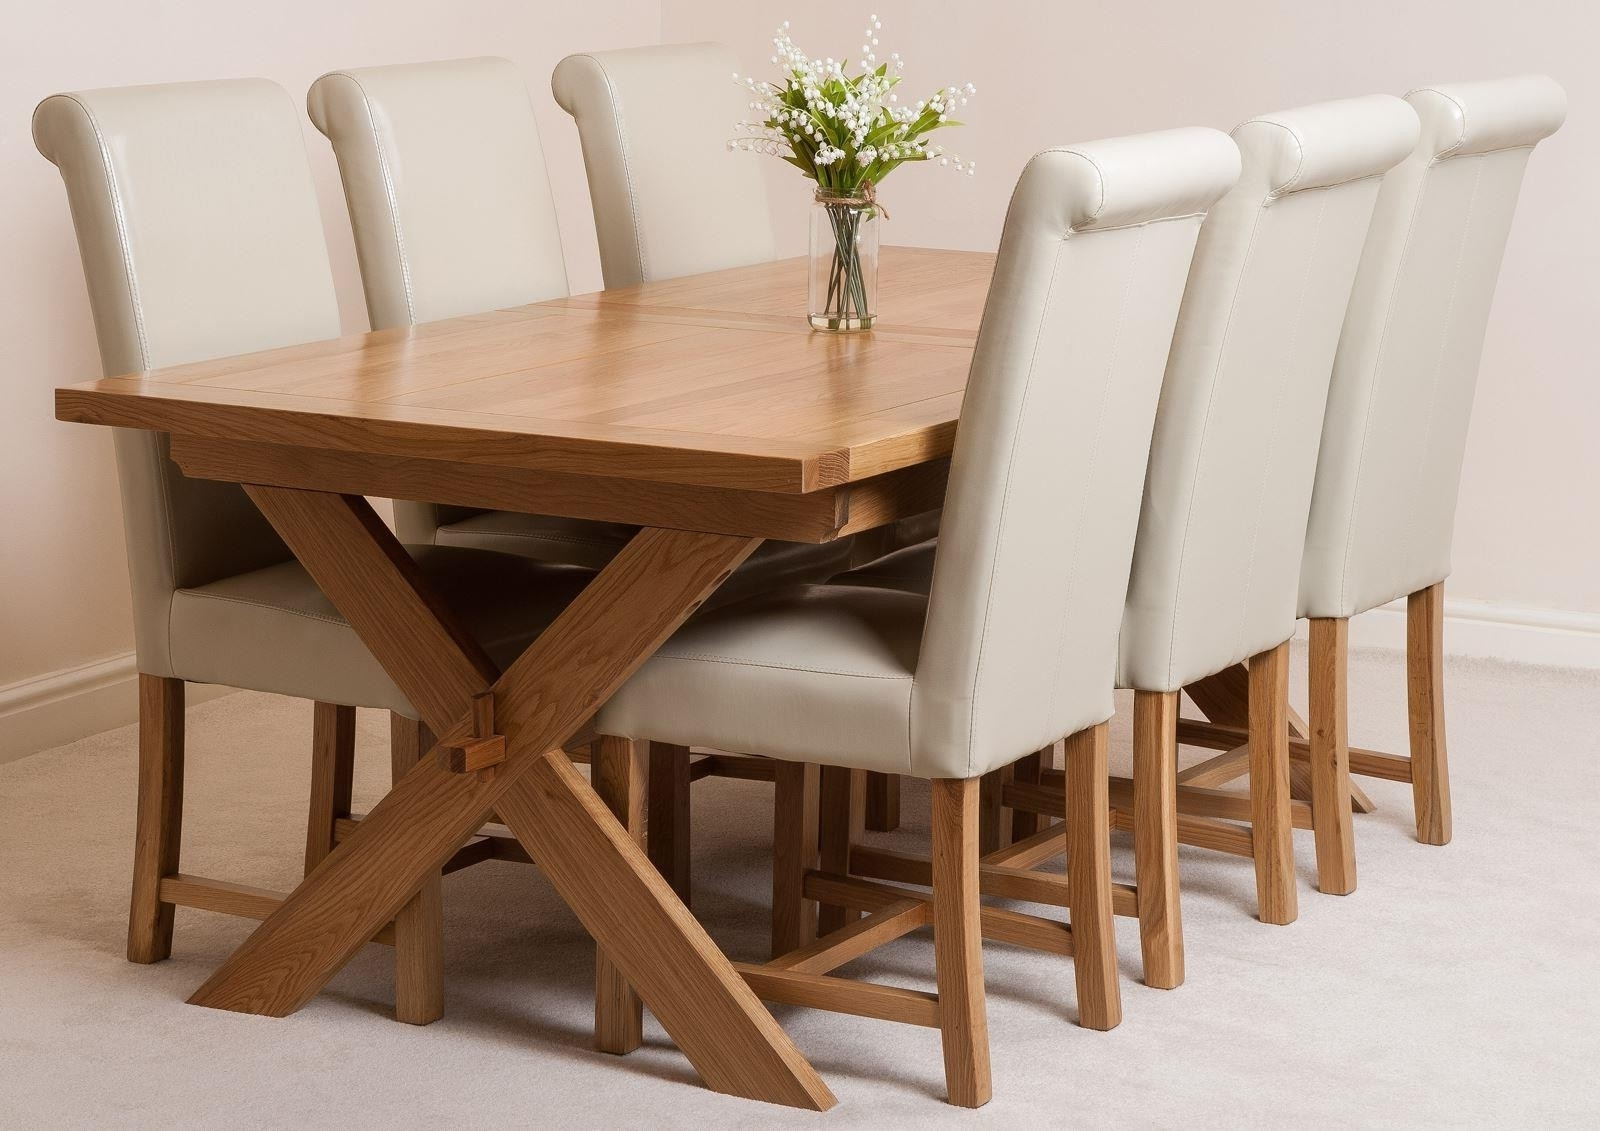 Oak Furniture King Within Oak Dining Set 6 Chairs (View 20 of 25)